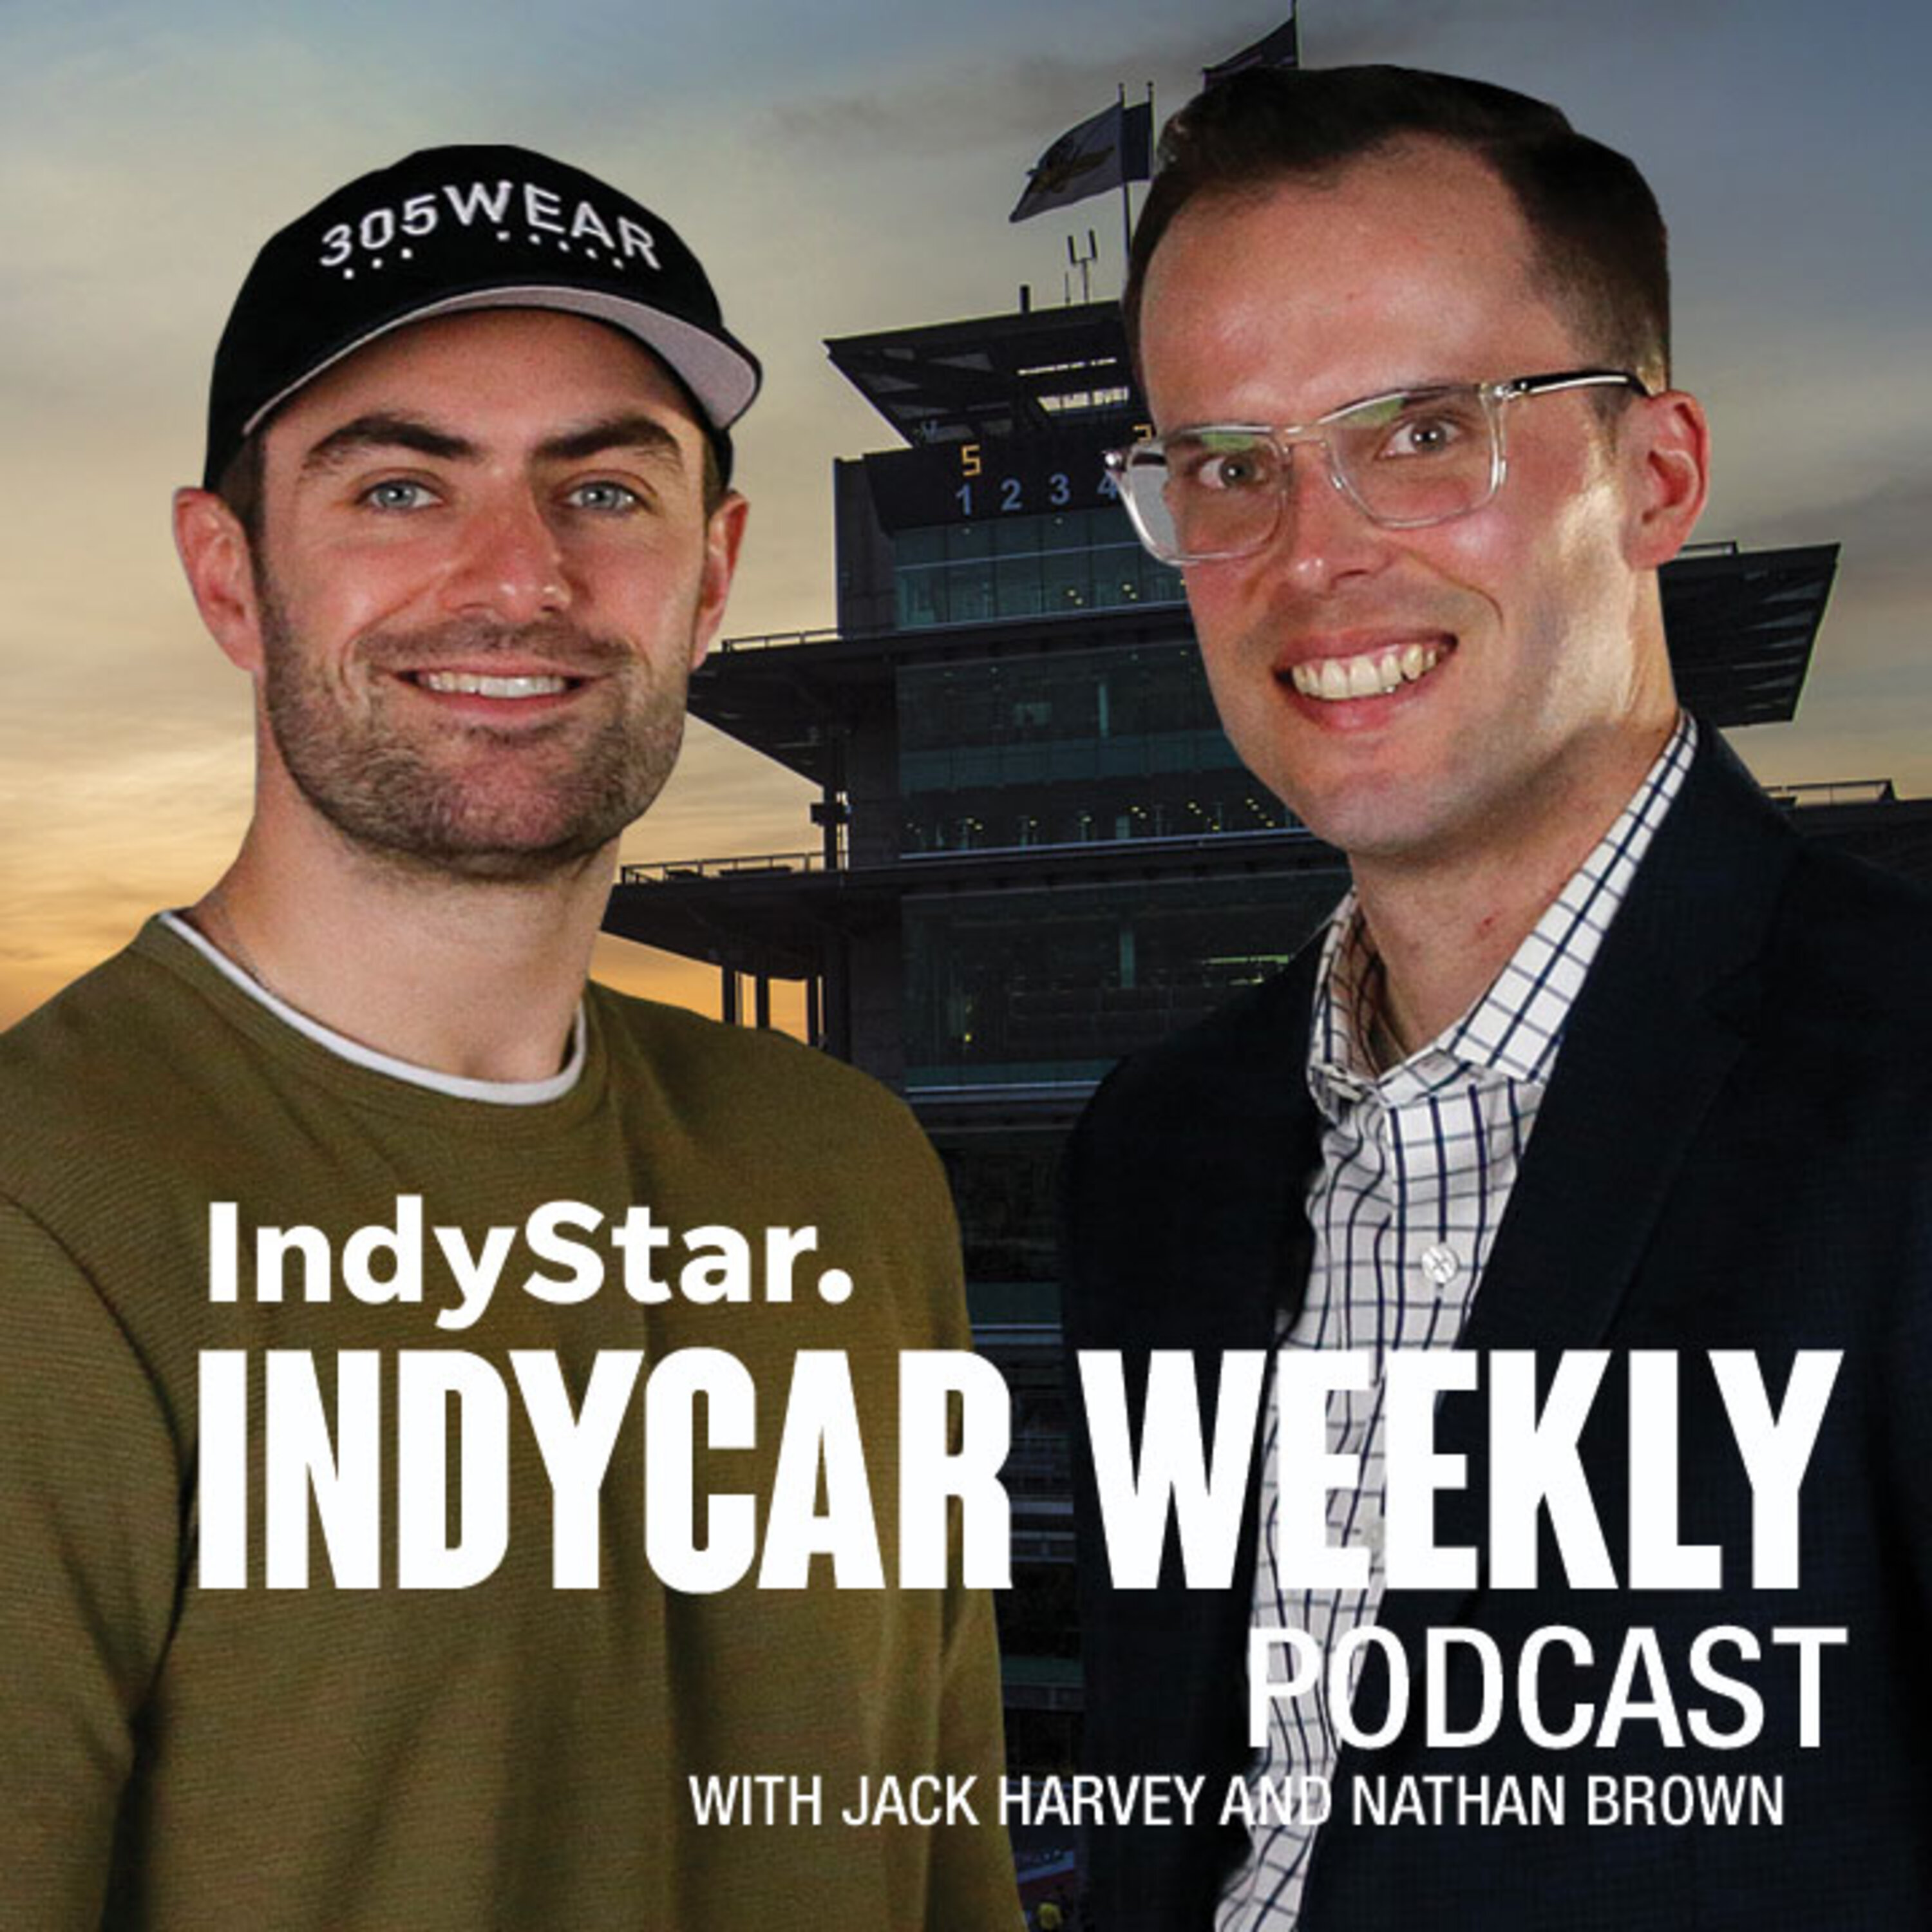 IndyCar Weekly with Jack Harvey - Nathan and Jack preview the 2021 IndyCar season